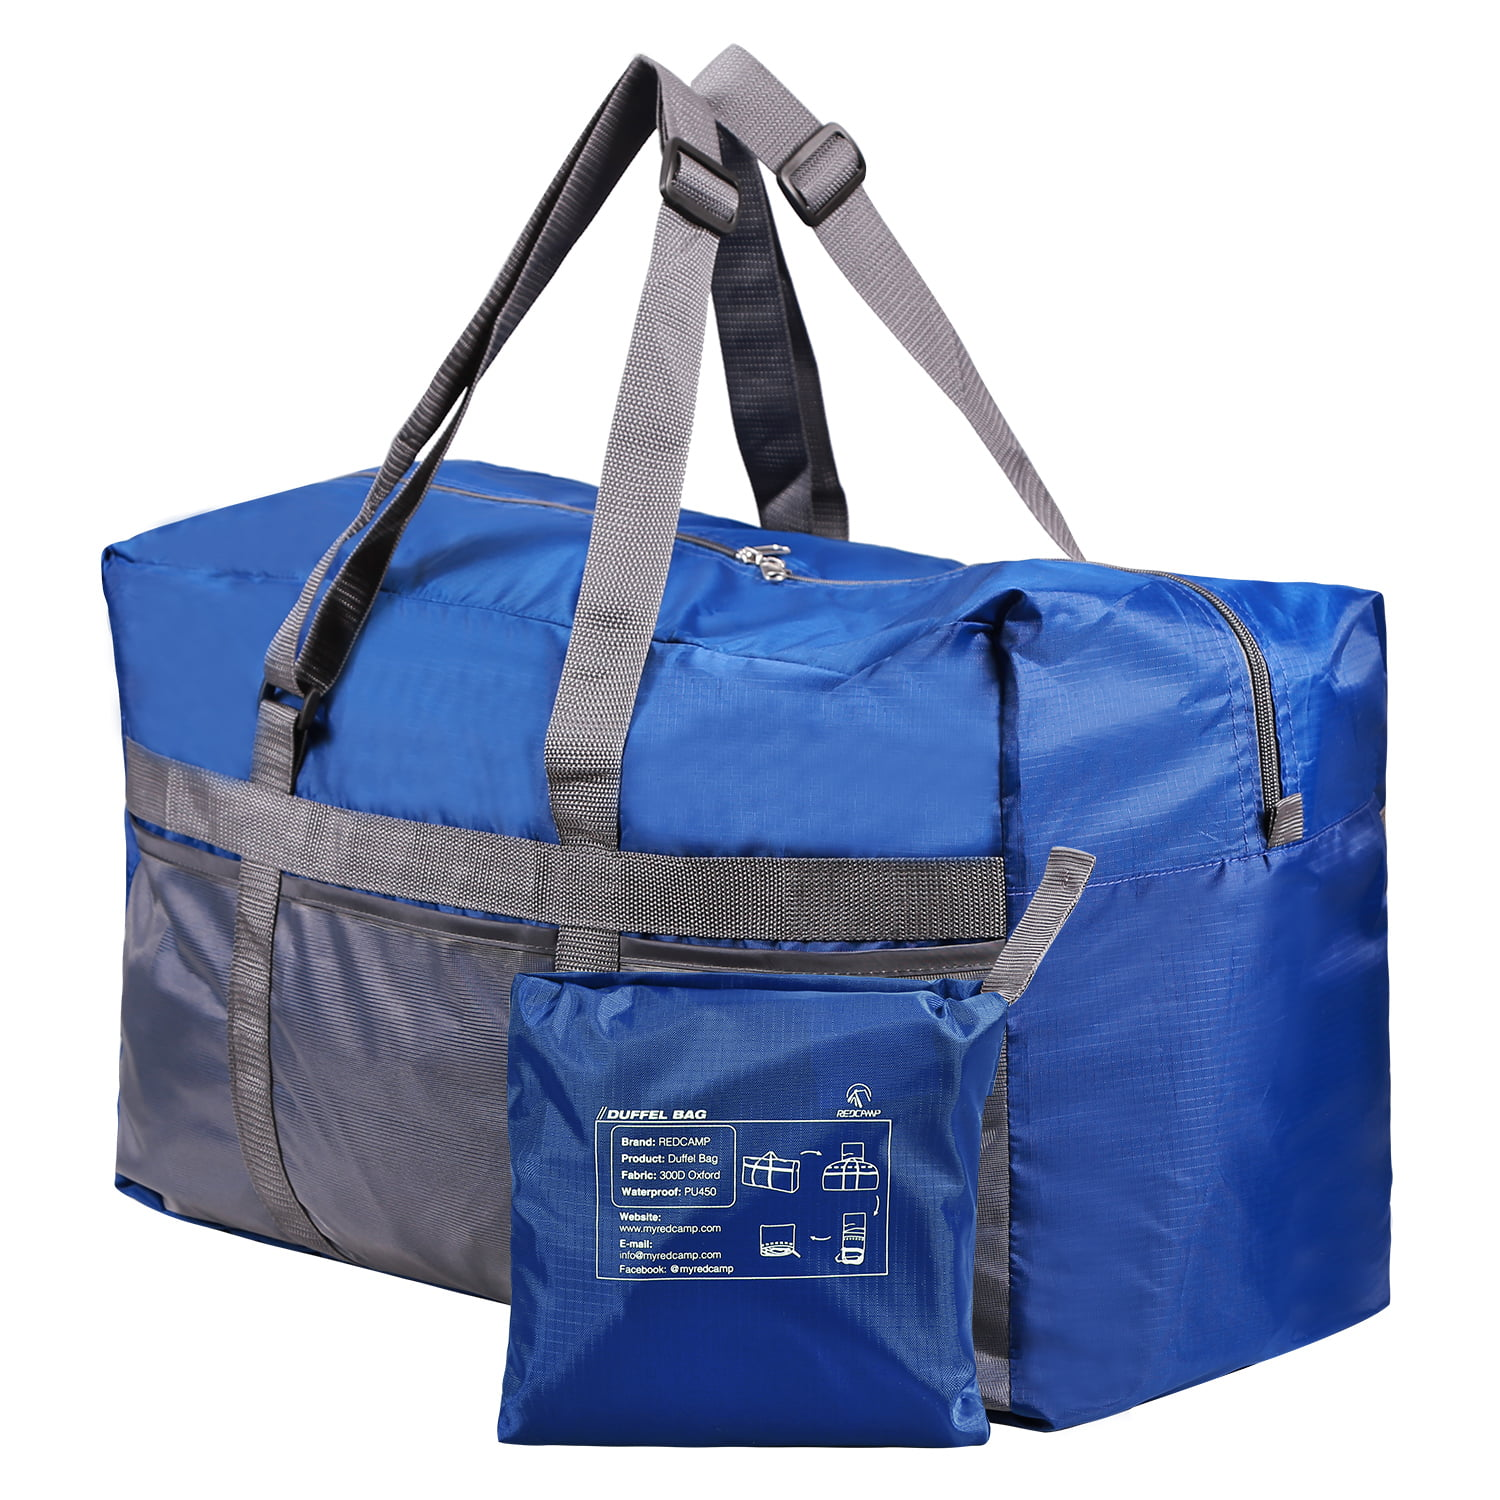 Travel Luggage Duffle Bag Lightweight Portable Handbag Parrot Large Capacity Waterproof Foldable Storage Tote